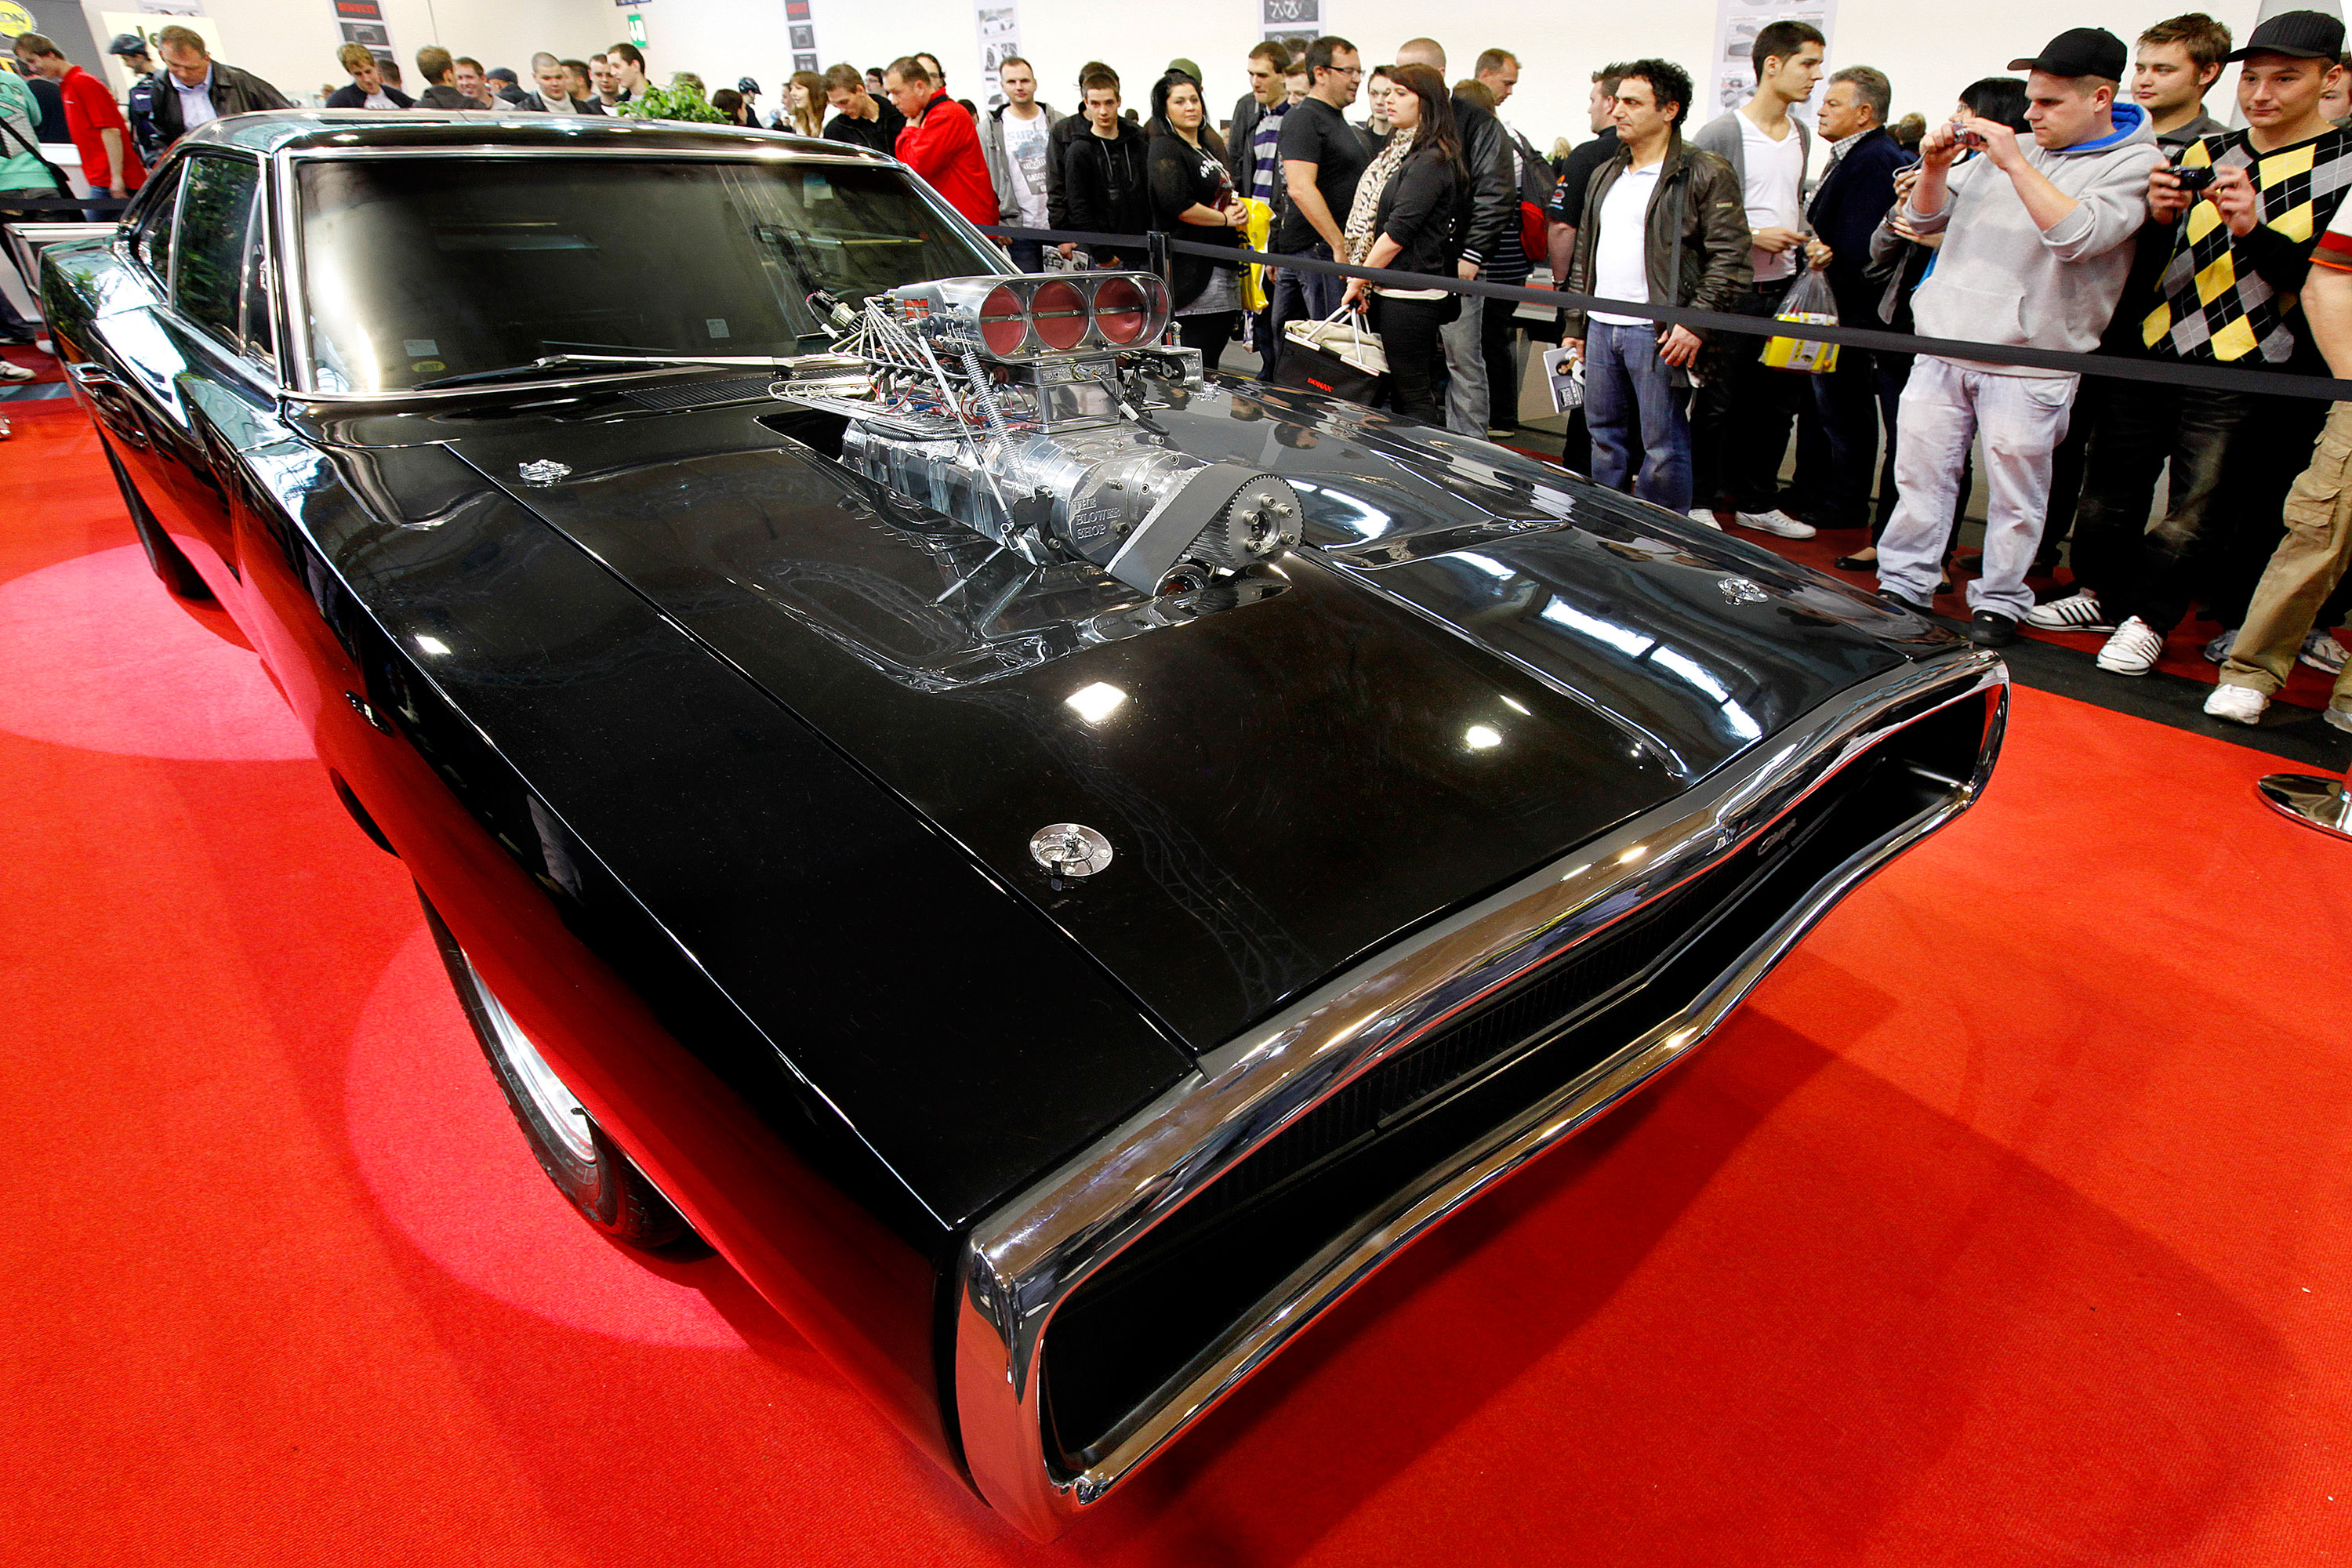 Iconic 1970 Dodge Charger At Tuning World Bodensee 2010